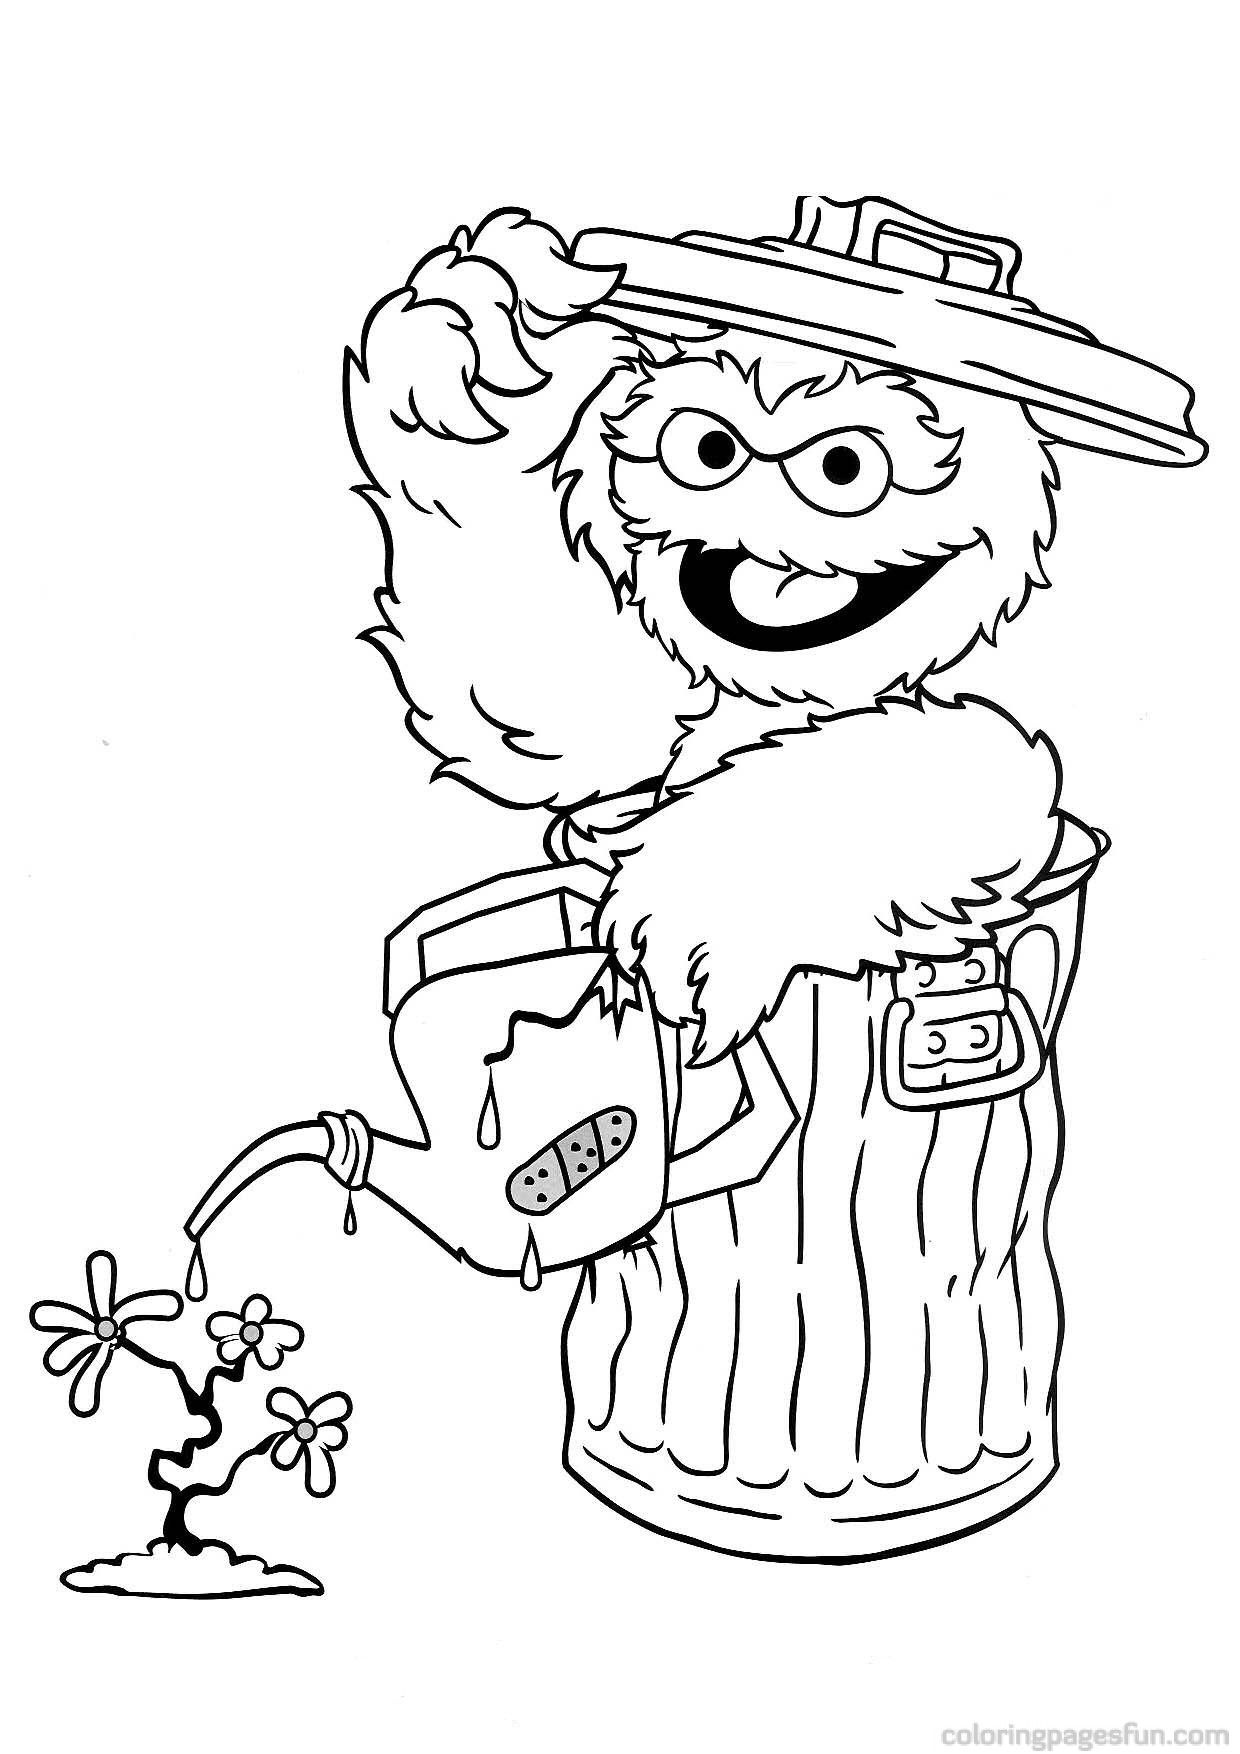 Sesame Street Coloring Pages Free Printable Coloring Pages 12607 - Free Printable Sesame Street Coloring Pages